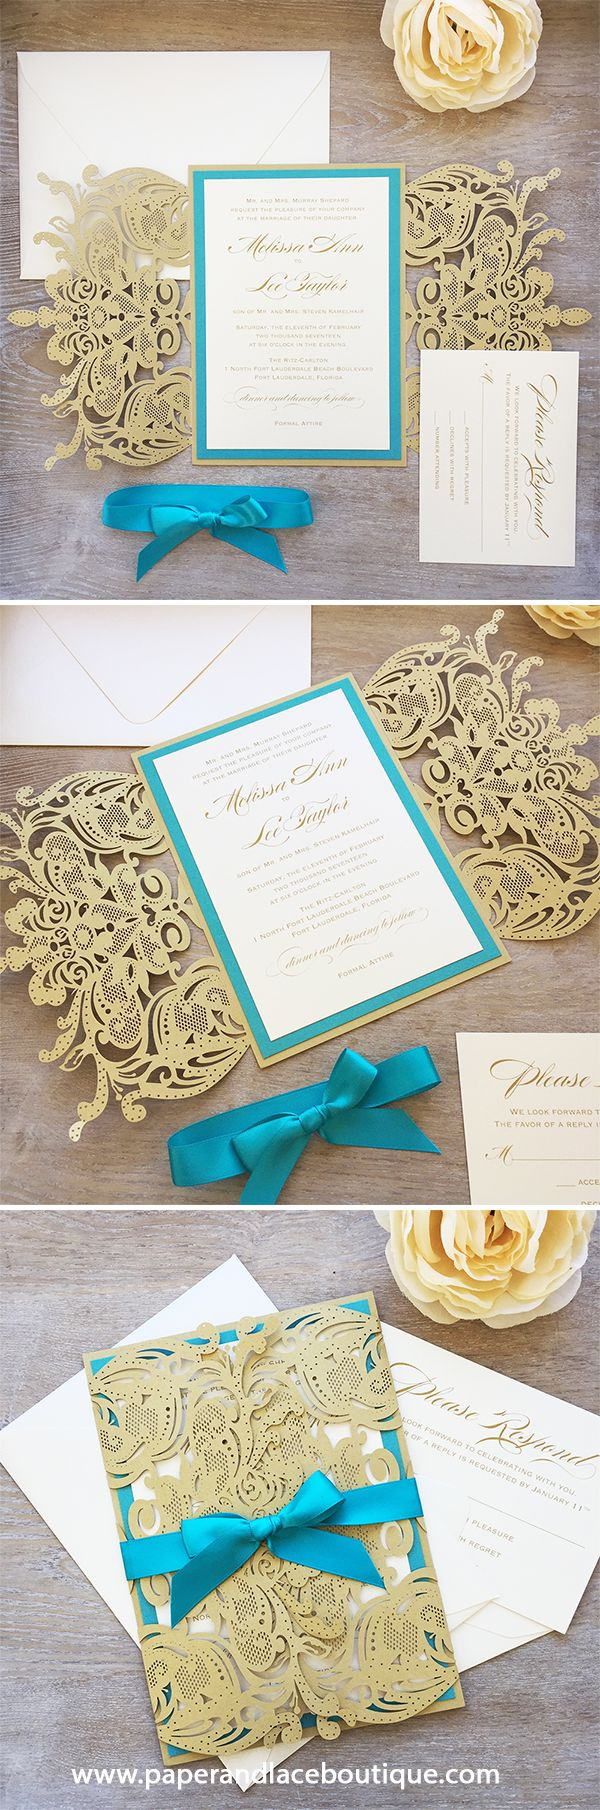 84 best paper lace invitations and stationery images on